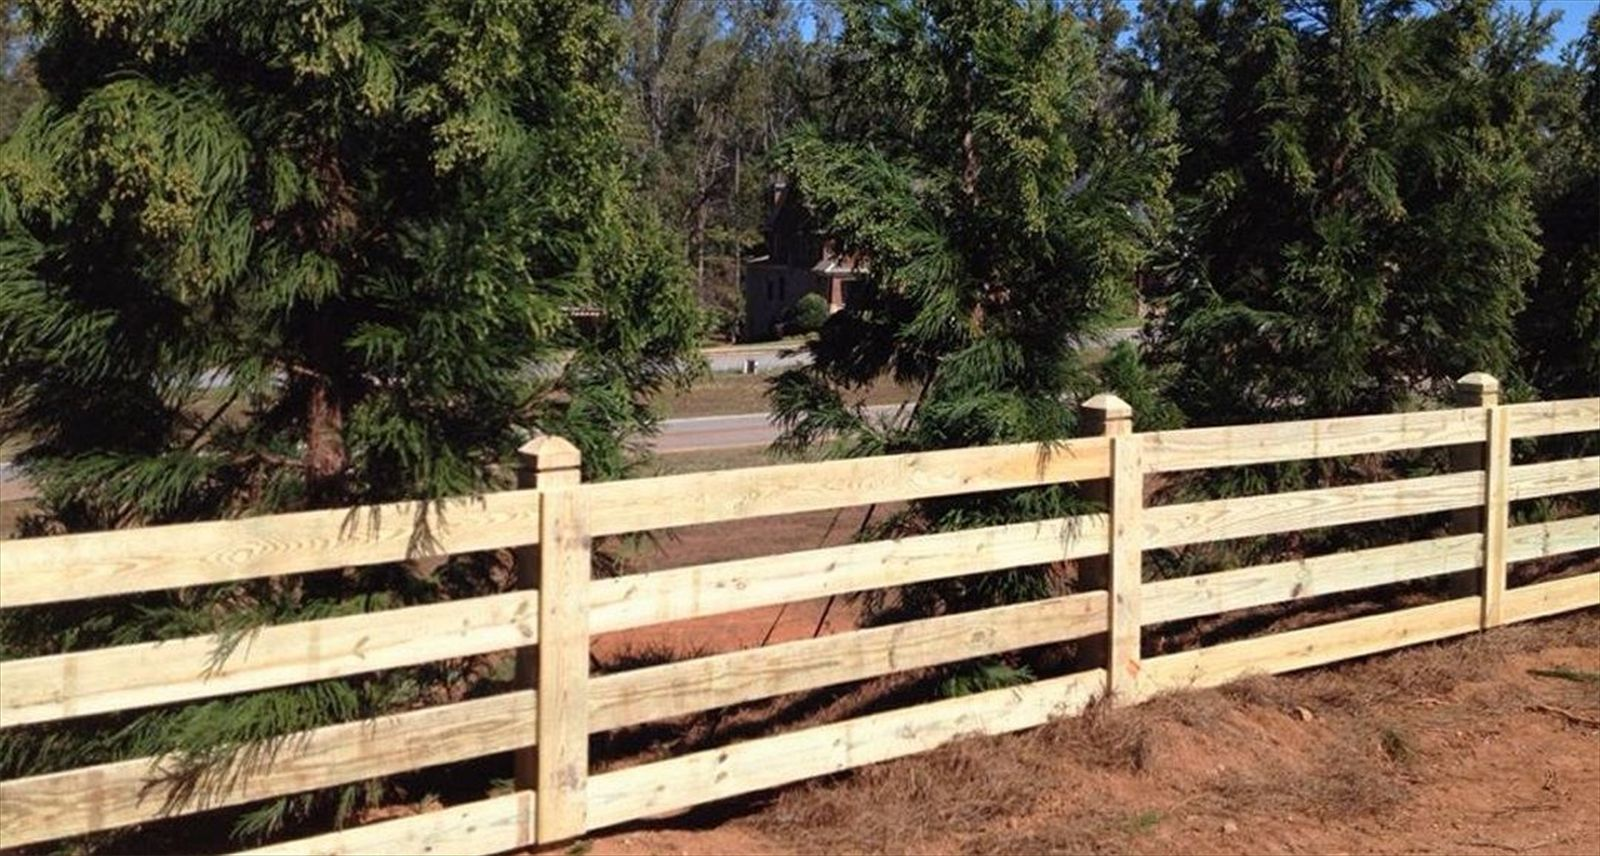 rail fence | outdoors ~fencing | Pinterest | Farm fencing, Wire ...